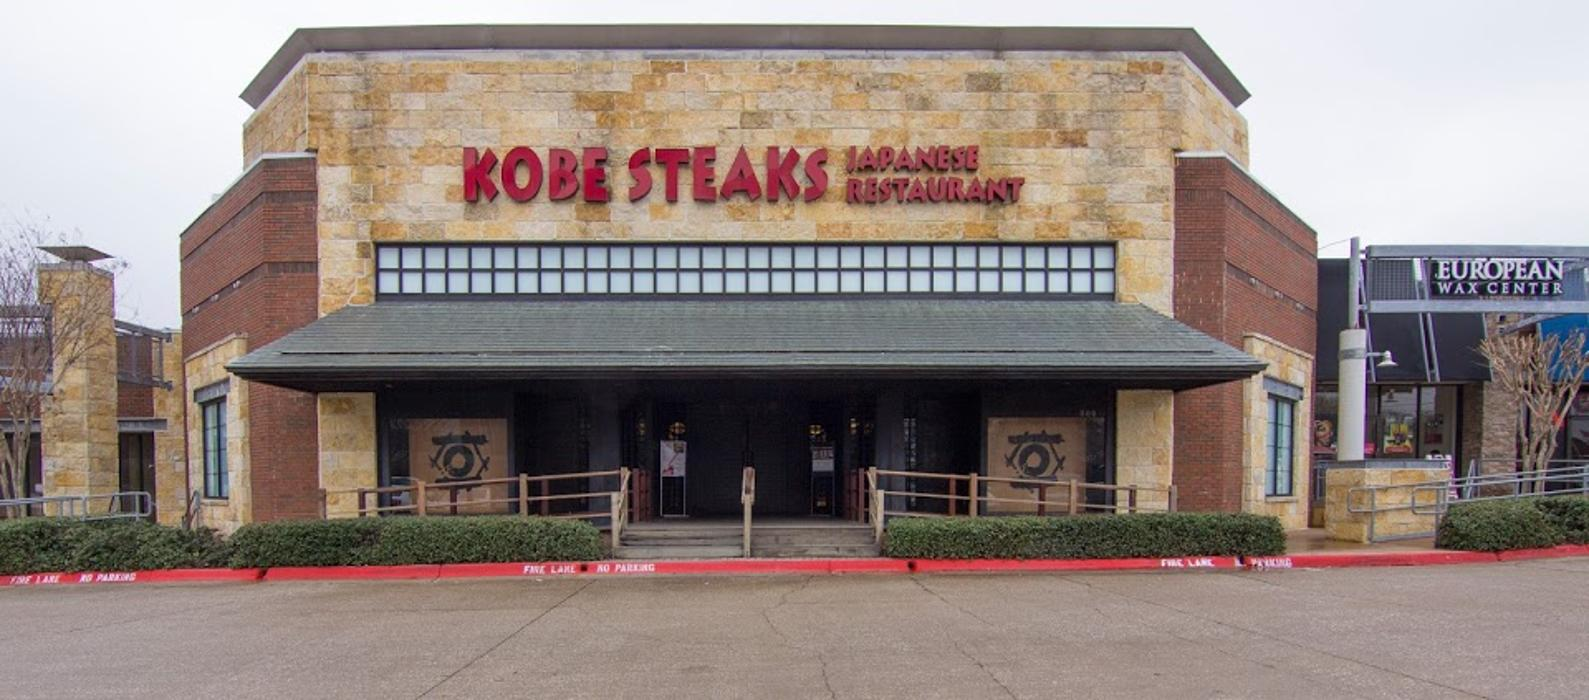 Kobe Steaks Japanese Restaurant - Dallas, TX